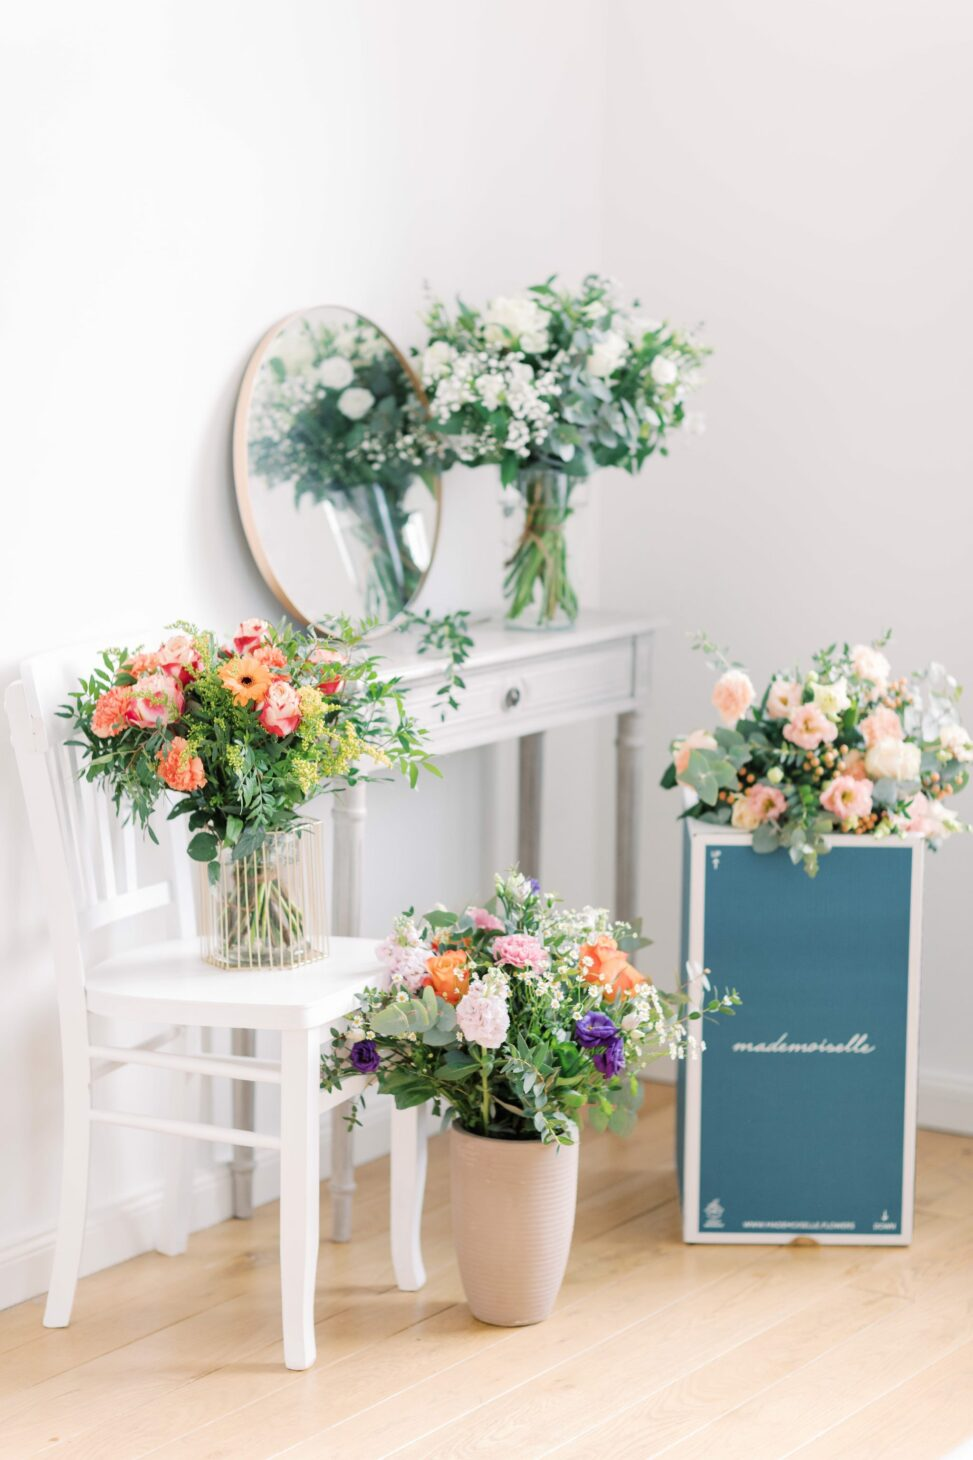 Flower bouquet subscription in Belgium for individuals or companies